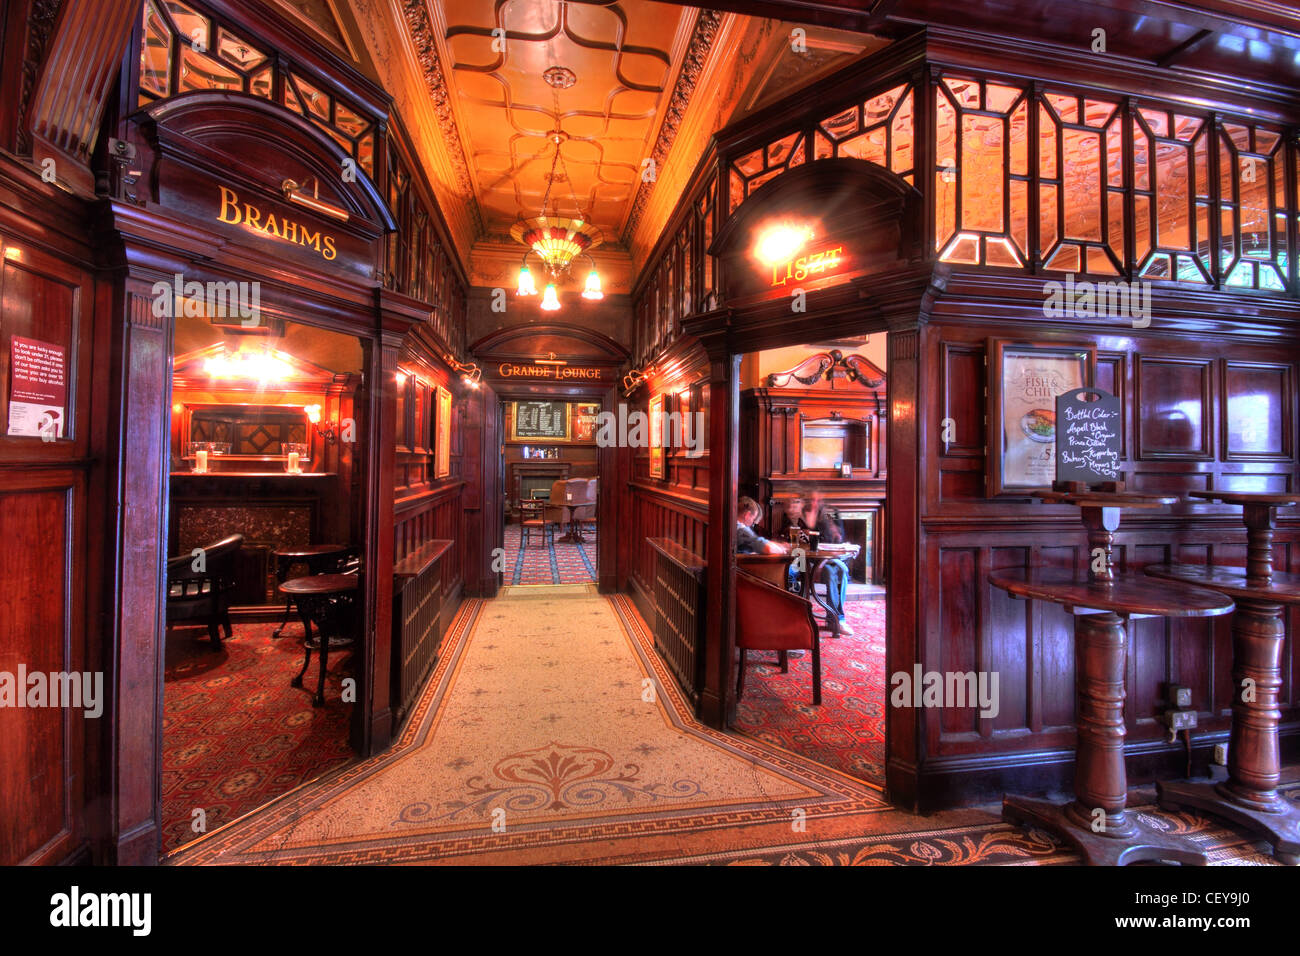 Interior,Phillharmonic,Pub,Liverpool,Philharmonic,gin,palace,ginpalace,decorated,decorated,mersey,Hope,St,Street,Liverpool,Canning,Georgian,Quarter,Rodney,Street,conservation,area,grade,2,II,listed,public,house,the Phil Brahms Liszt Robert Cain bar area architecture,pubs,bar,The Phil,Hope,Street,Quarter,William,Hope,Philharmonic,Hall,Victorian,design,Walter,W,Thomas,The,interior,is,decorated,in,musical,themes,that,relate,to,the,nearby,concert,hall.,These,decorations,are,executed,on,repoussé,copper,panels,designed,by,Bare,and,by,Thomas,Huson,plasterwork by C. J. Allen,mosaics,and,items,in,mahogany,and,glass.,Two,of,the,smaller,rooms,are,entitled,Brahms,and,Liszt.,Of,particular,interest,to,visitors,is,the,high,quality,of,the,gentlemens,urinals,constructed in,Buy,Pictures,of,Buy,Images,Of,Liverpool,Pub,Liverpool Pubs,tourist,tourism,tour,pub,bars,@hotpixuk,Phillharmonic,Philharmonic pub liverpool pub,Liverpool Pubs,pubs,bars,bar,history,historic,Hope Street Quarter,a particularly attractive roseate marble architectural gems,gotonysmith,,,,,,,